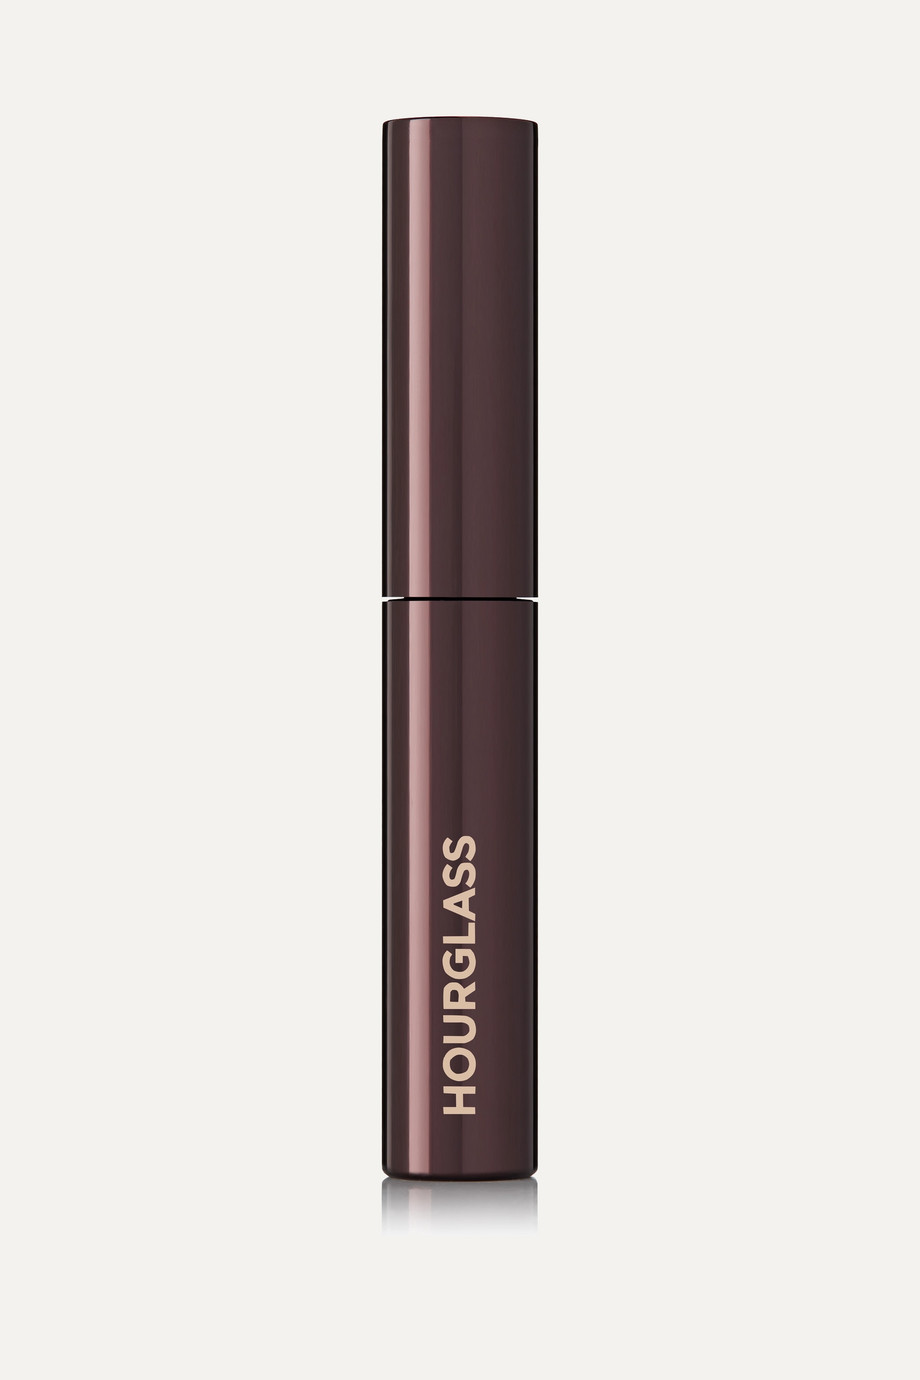 Hourglass Arch Brow Shaping Gel - Clear